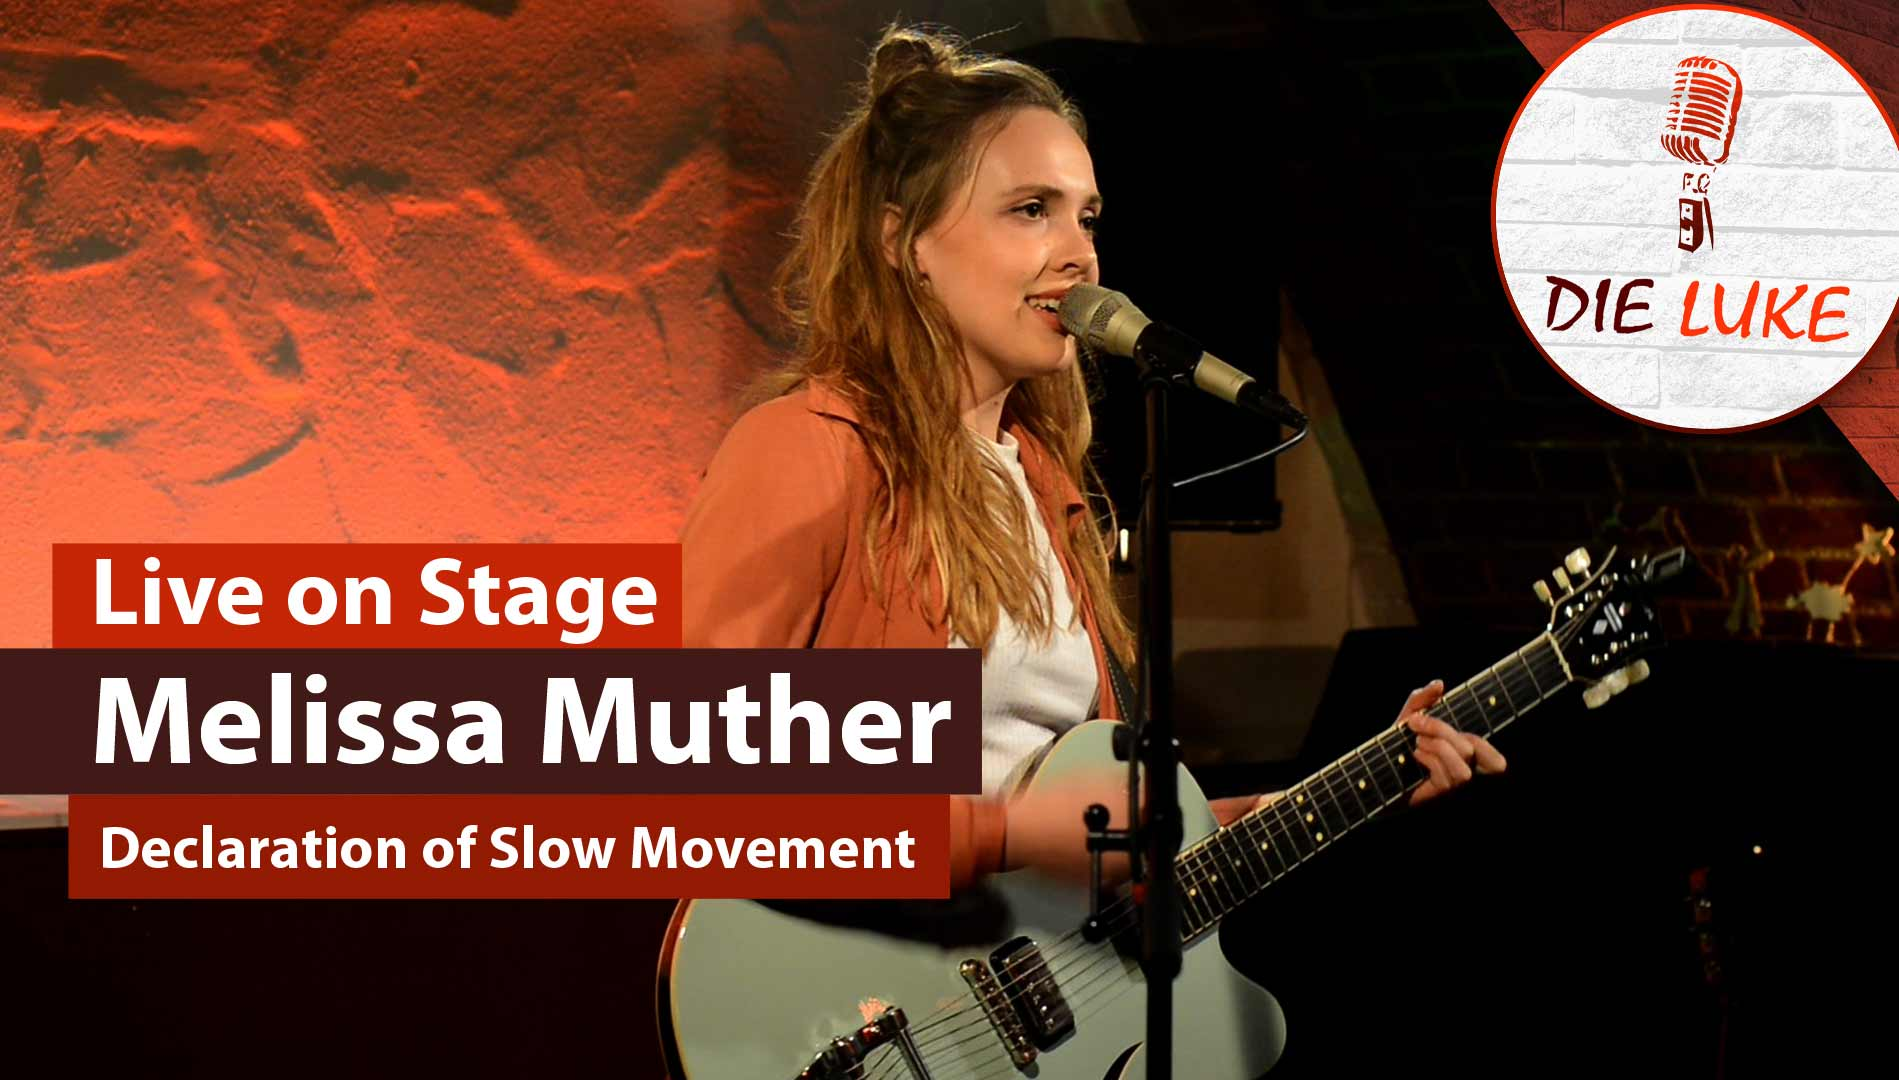 Melissa Muther | Declaration of slow Movement